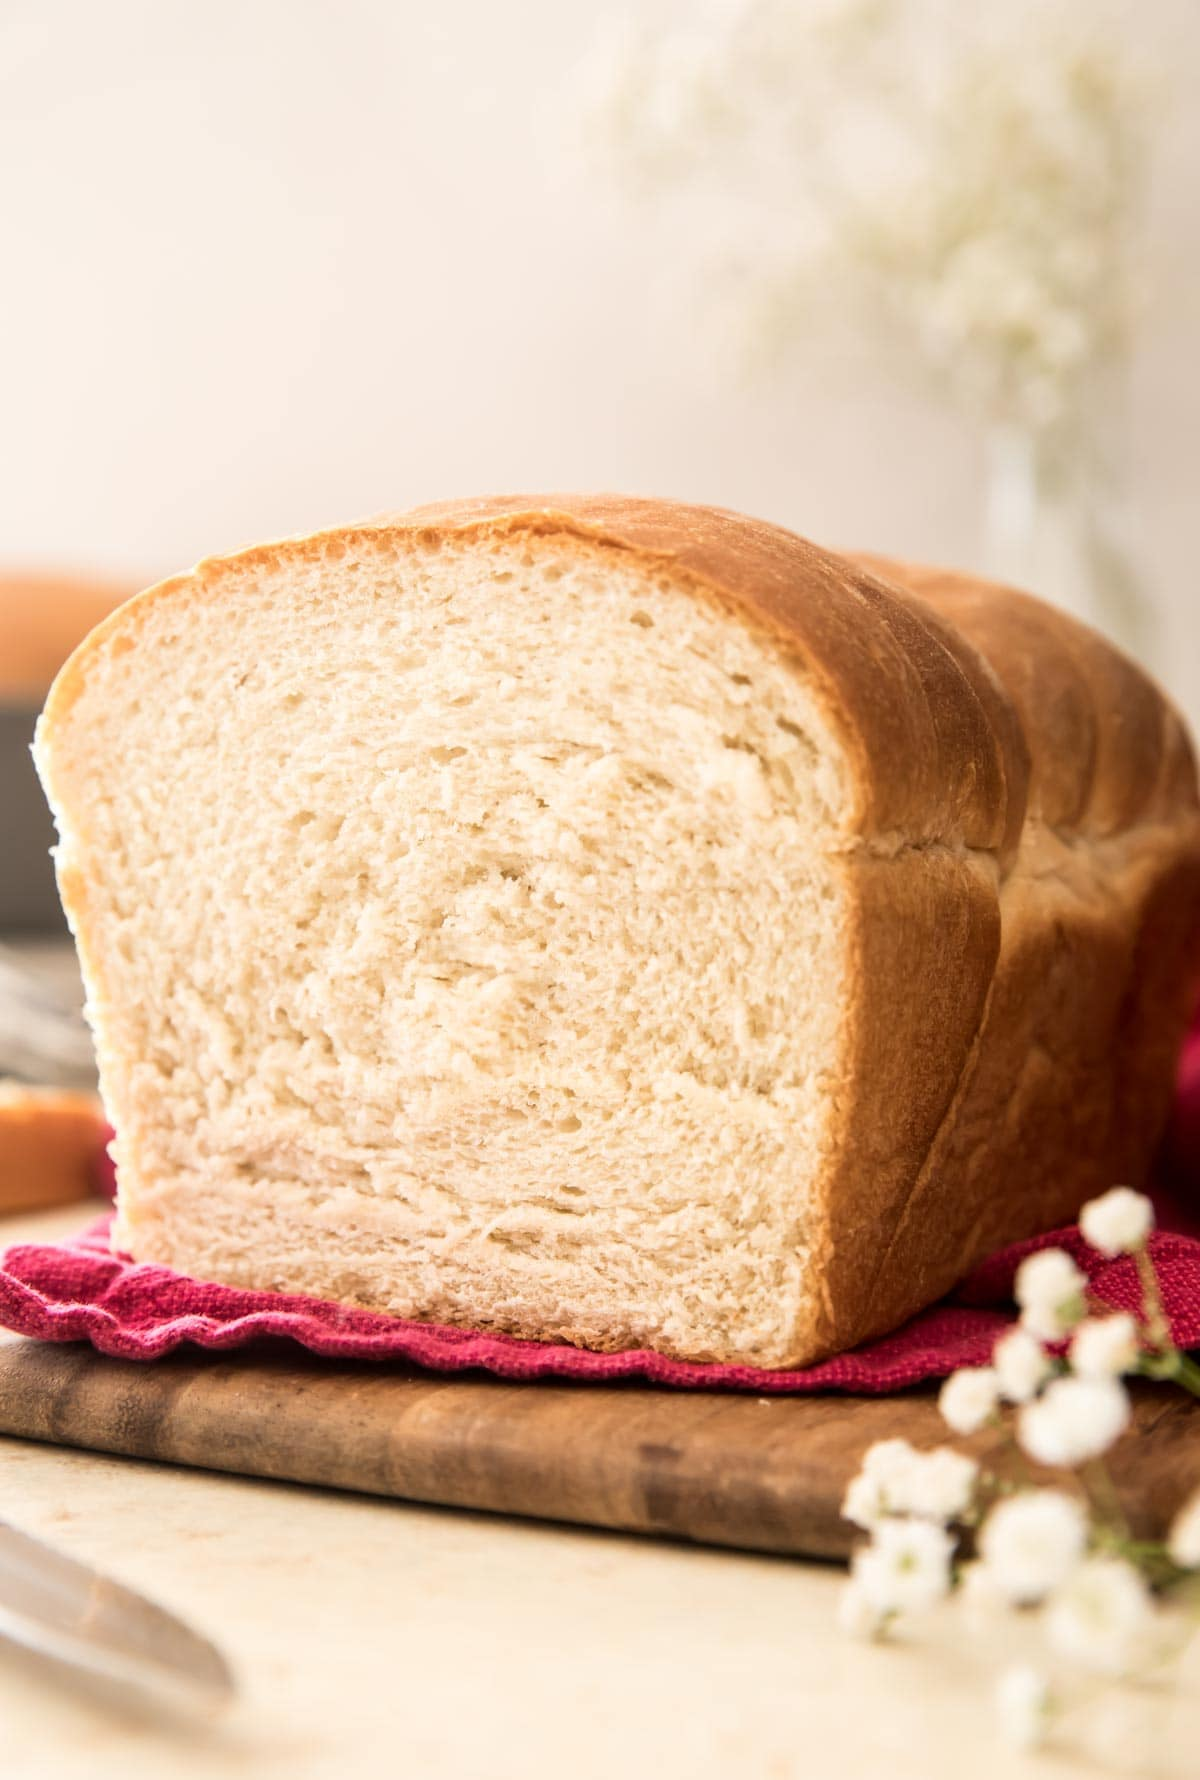 loaf of bread on a red towel on a wooden cutting board with white flowers in foreground and background